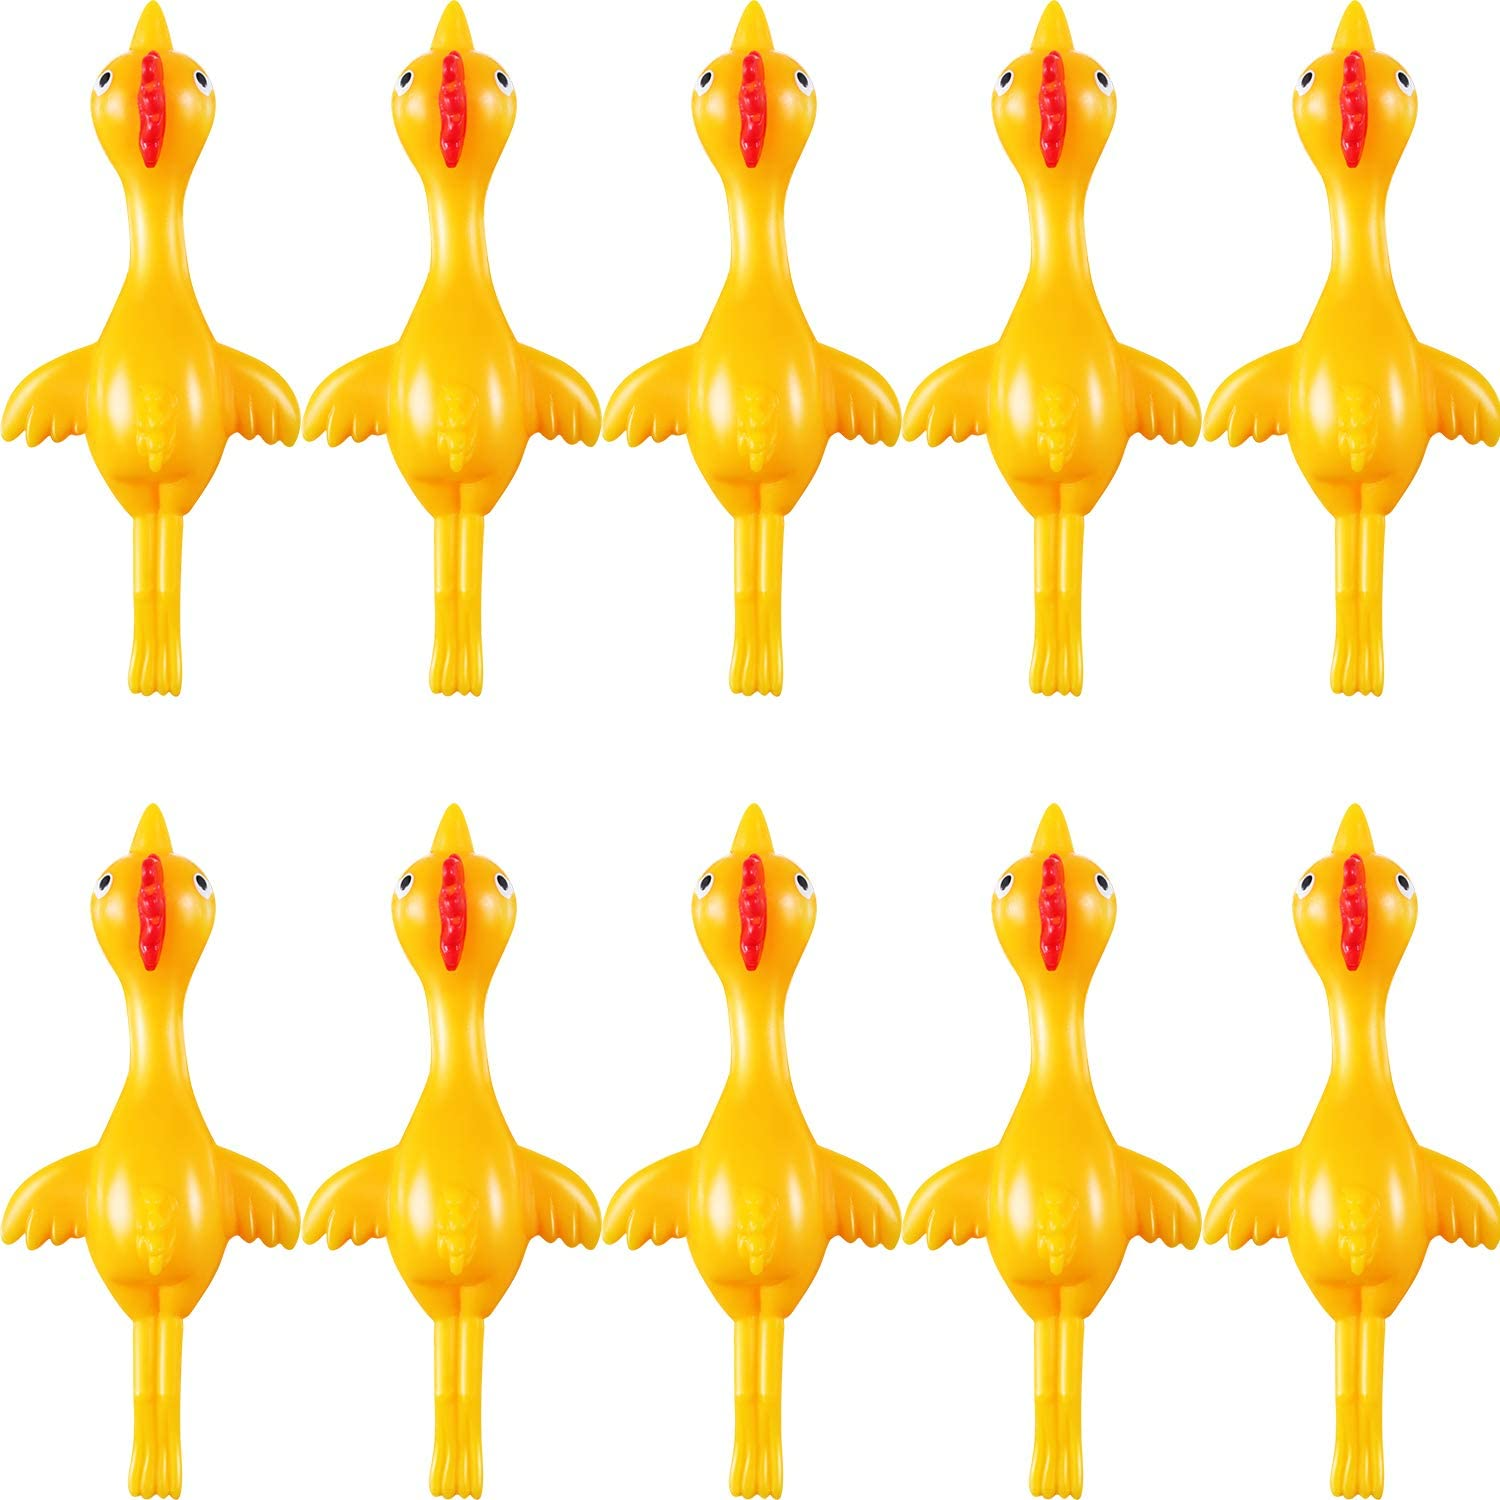 10 Pack Yellow Sumind 10 Pack Slingshot Chicken Rubber Chicken Flick Chicken Flying Chicken Flingers Stretchy Funny Christmas Easter Chicks Party Activity for Children